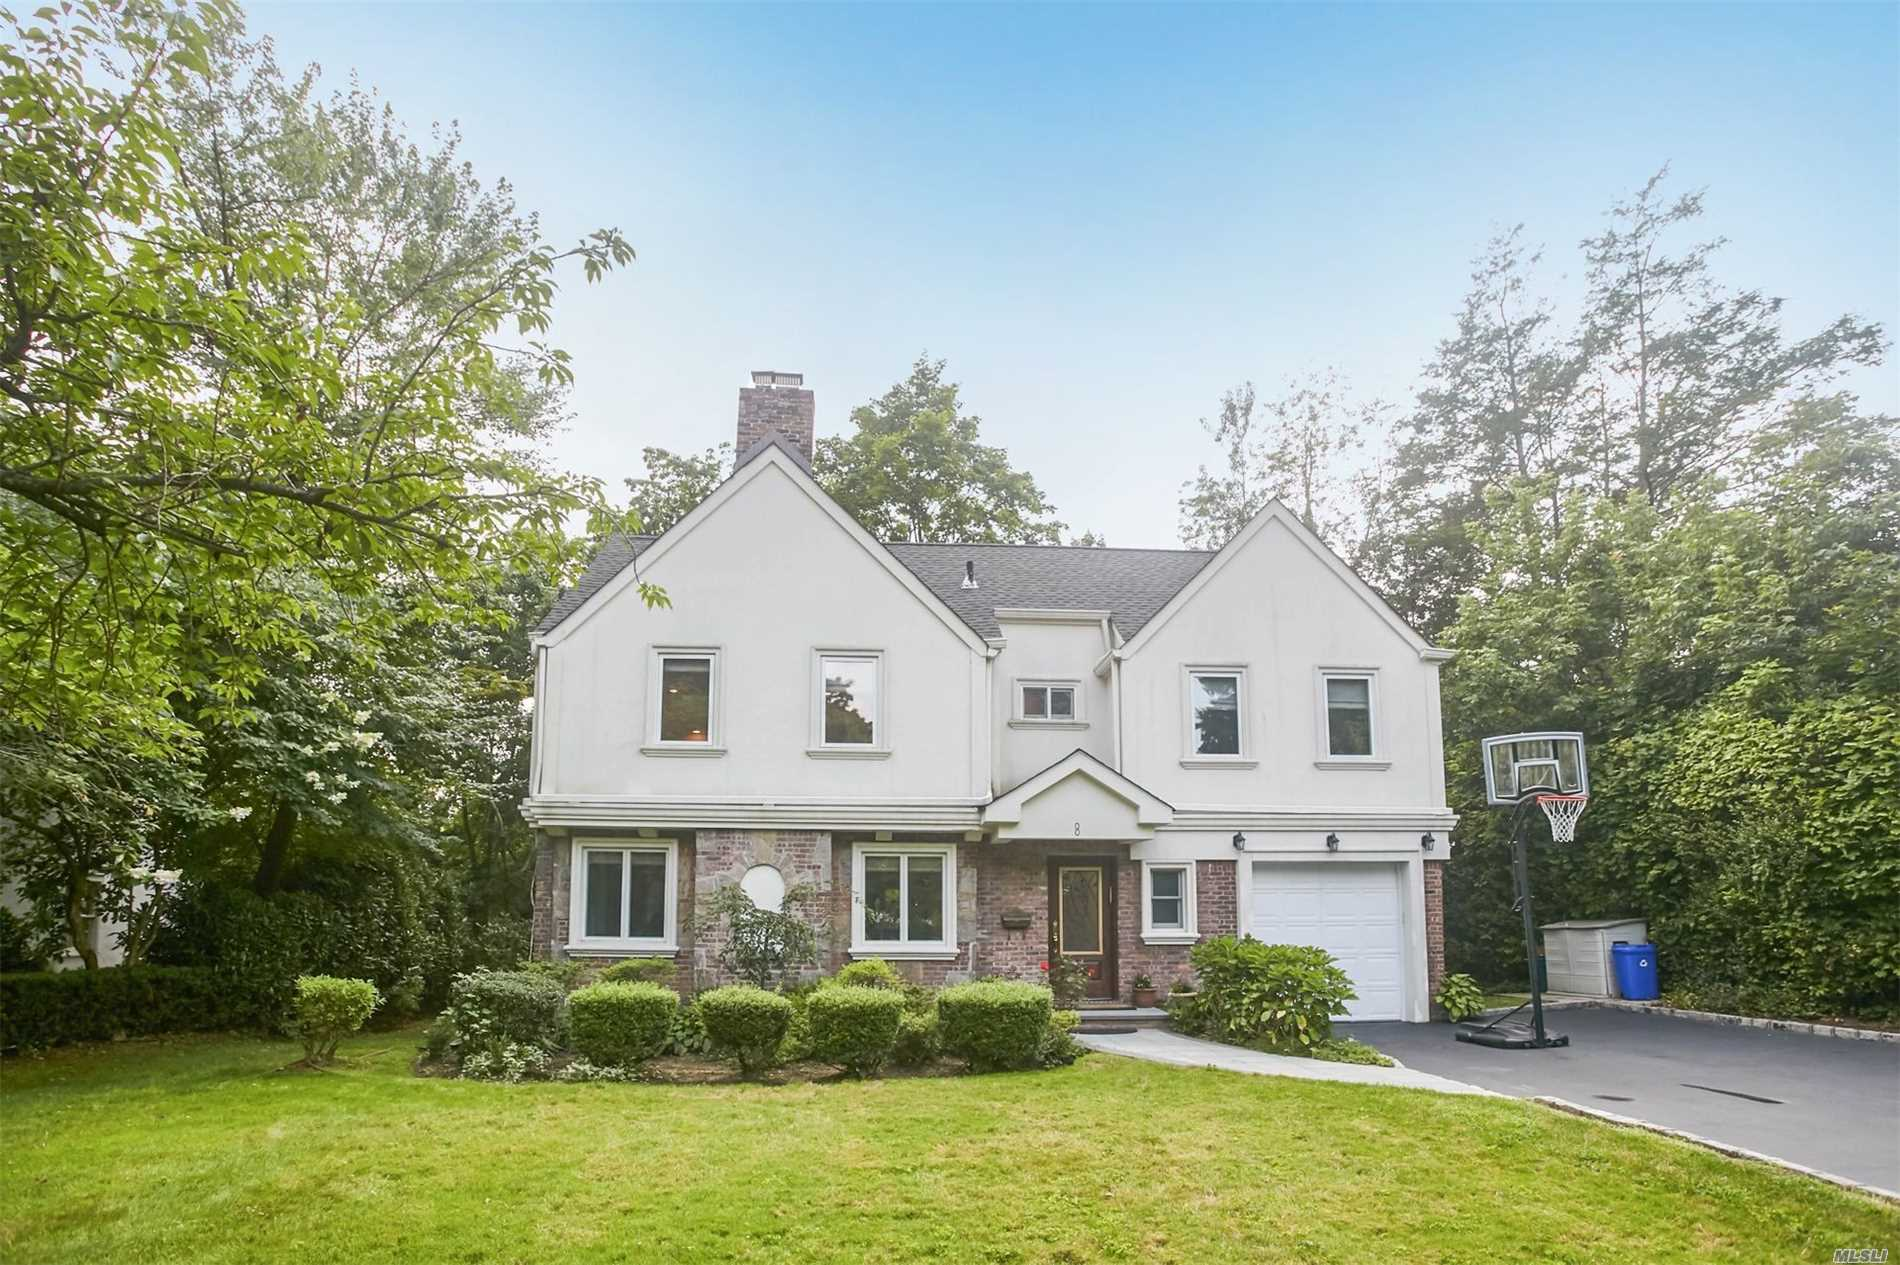 Desirable 4/5 Br Colonial On Beautiful Tree Line Street In The Prestigious Saddle Rock Estates. Fully Renovated 5 Yrs Ago Which Includes A New Roof, Plumbing & Electric. Sundrenched Open Floor Plan On The 1st Flr. Lrg Chef's Kitchen W/Granite Counter Tops And Ss Applncs. Master Suite Has Its Own Sitting Room & Bath W/Steam Shower In Addition To 3 Brs + A Full Bthrm On 2nd Floor. Close To Worship. Enjoy Gn Park District Amenities.